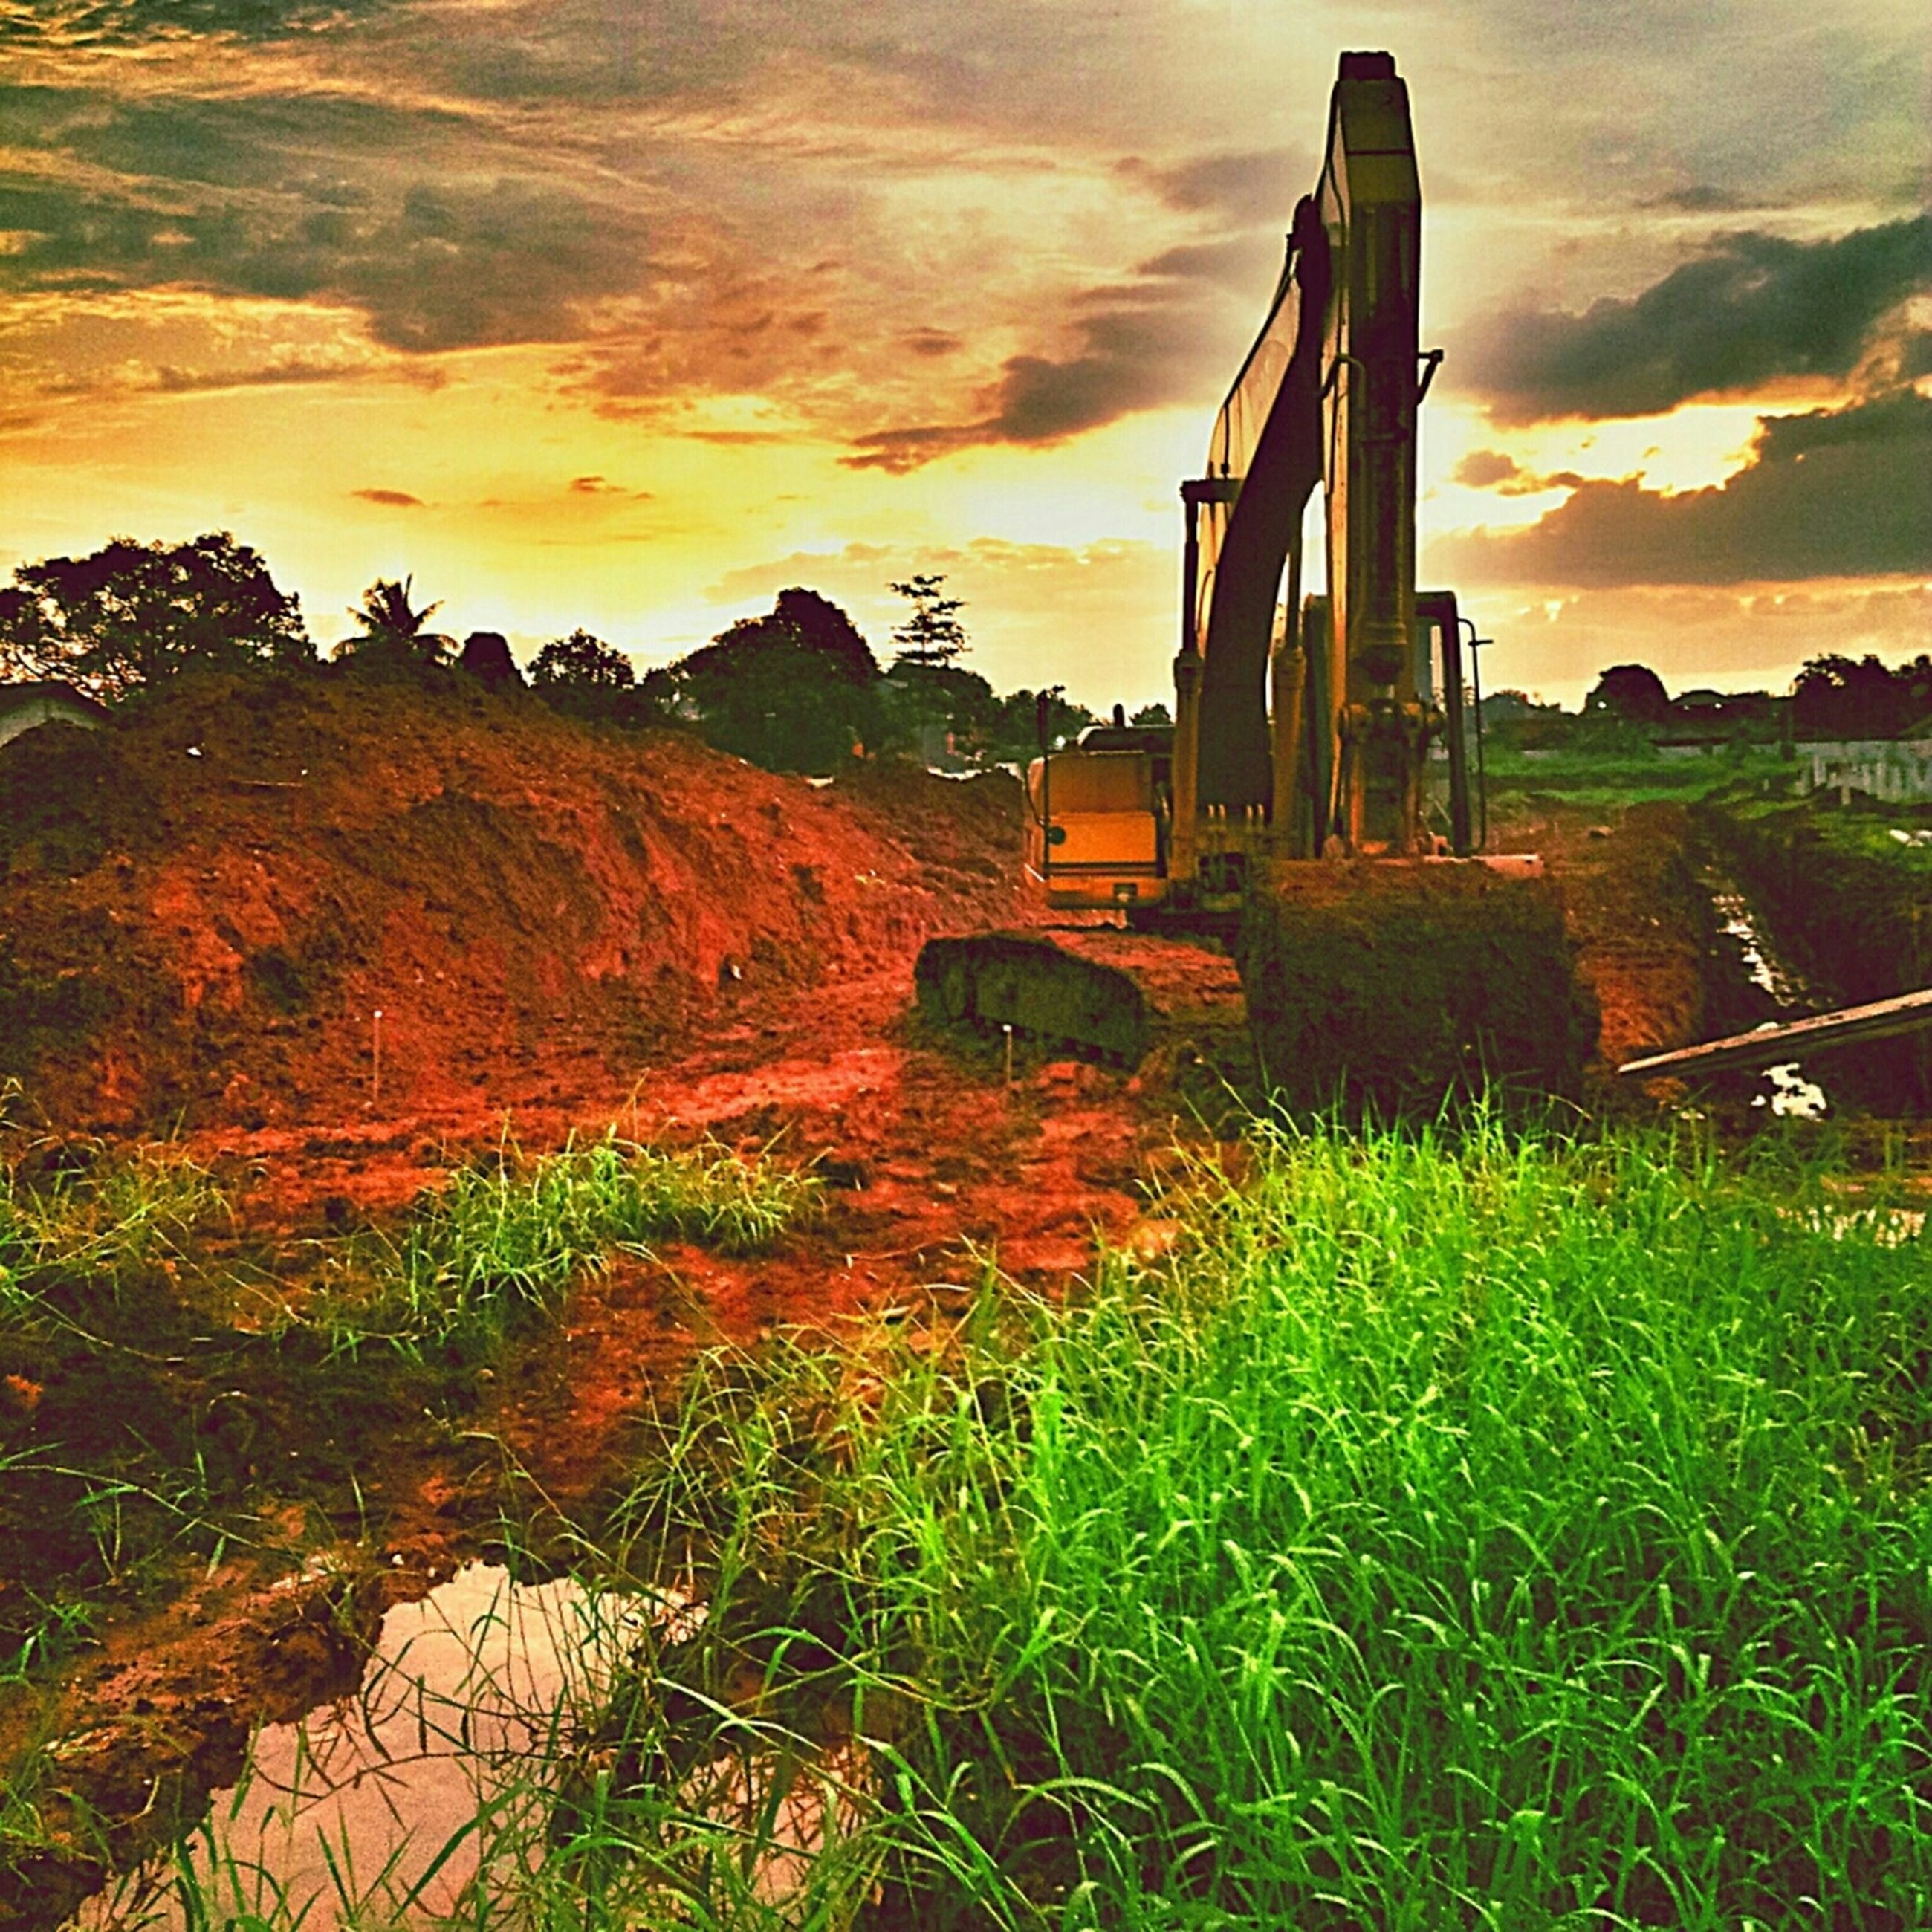 sky, architecture, built structure, sunset, grass, cloud - sky, building exterior, field, cloudy, orange color, cloud, landscape, nature, grassy, plant, tranquility, no people, outdoors, beauty in nature, tranquil scene